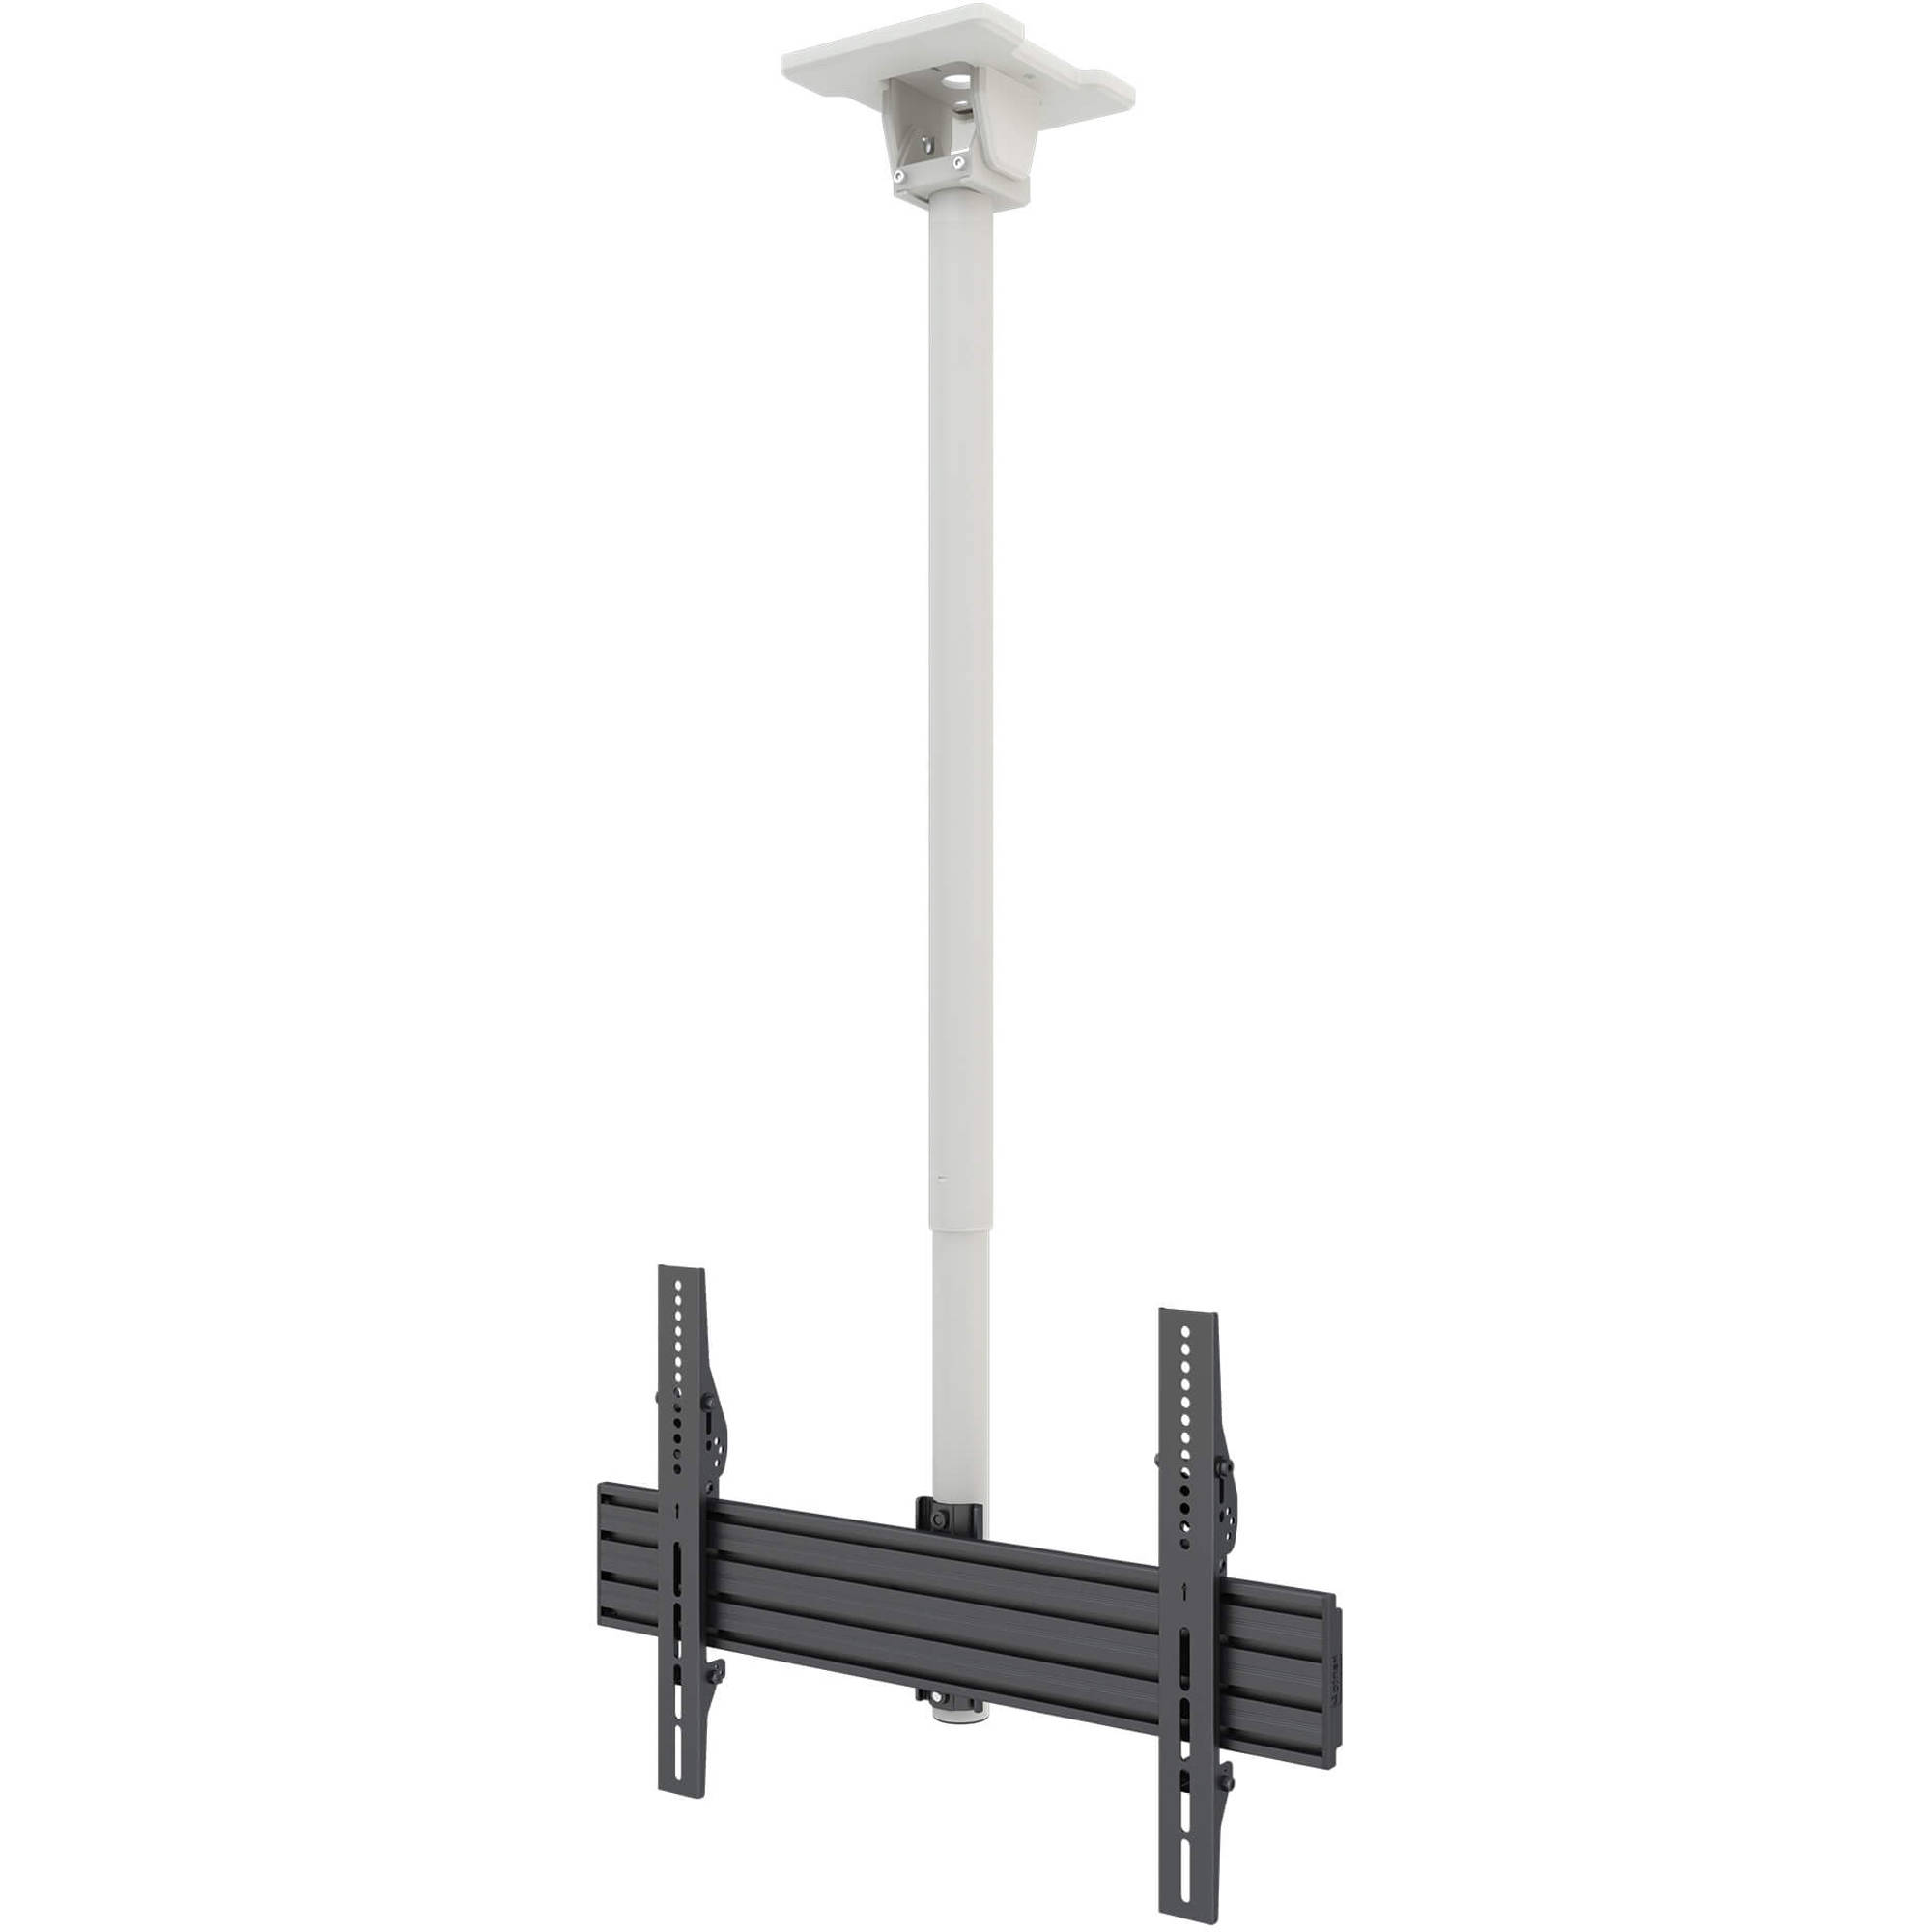 Ceiling Tv Mount For 37 70 Inch Tvs